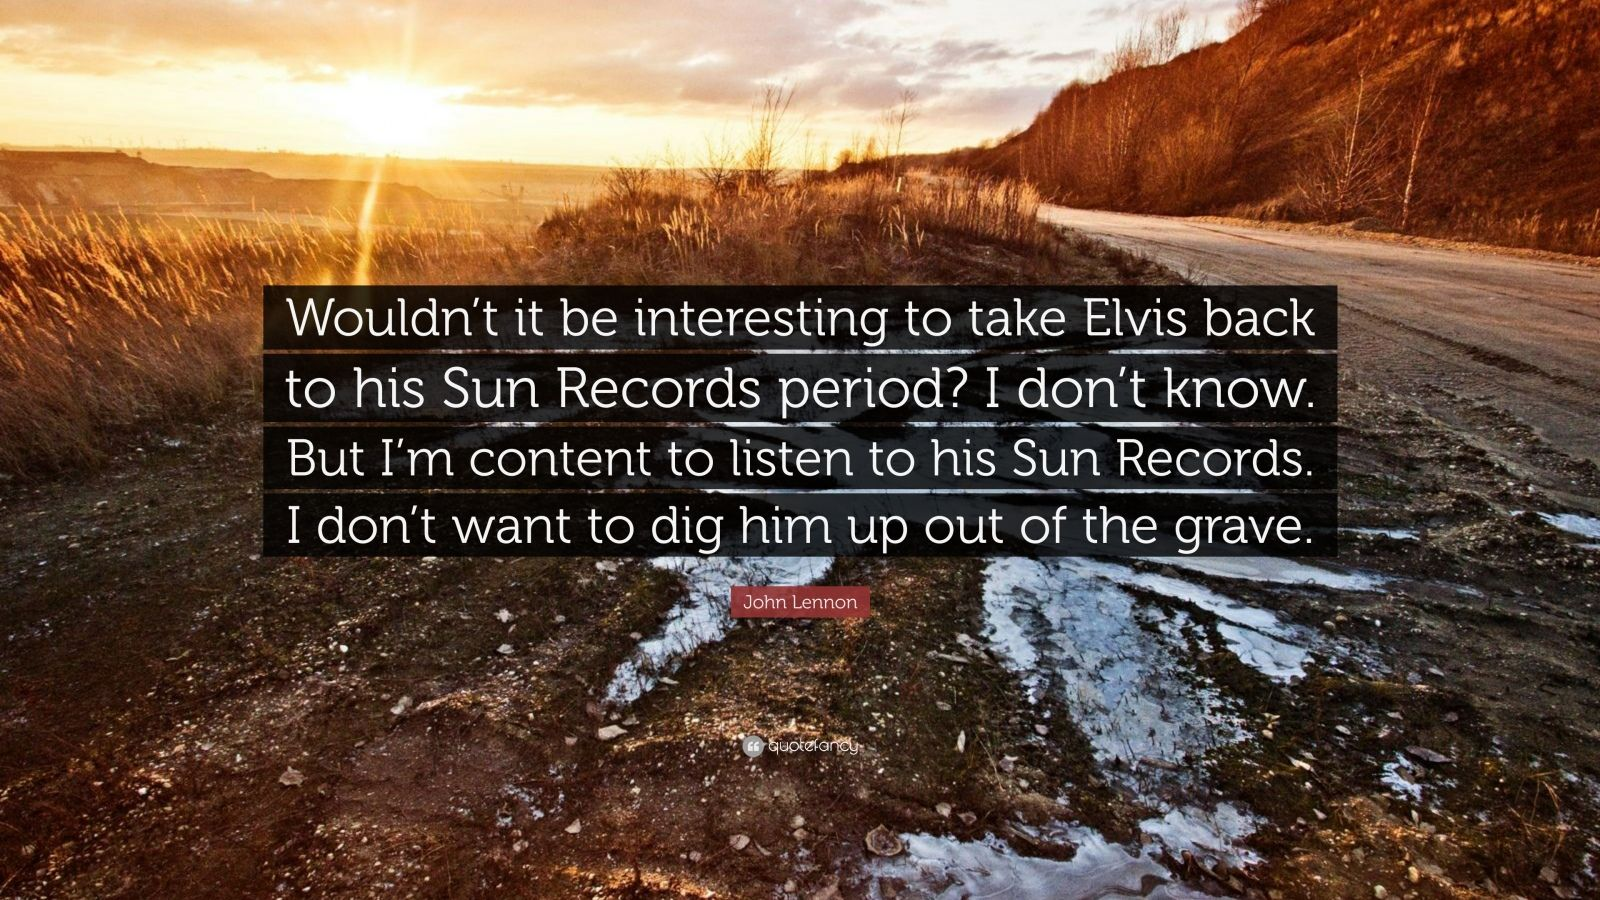 "John Lennon Quote: ""Wouldn't it be interesting to take Elvis back to his Sun Records period? I don't know. But I'm content to listen to his Sun Records. I don't want to dig him up out of the grave."""